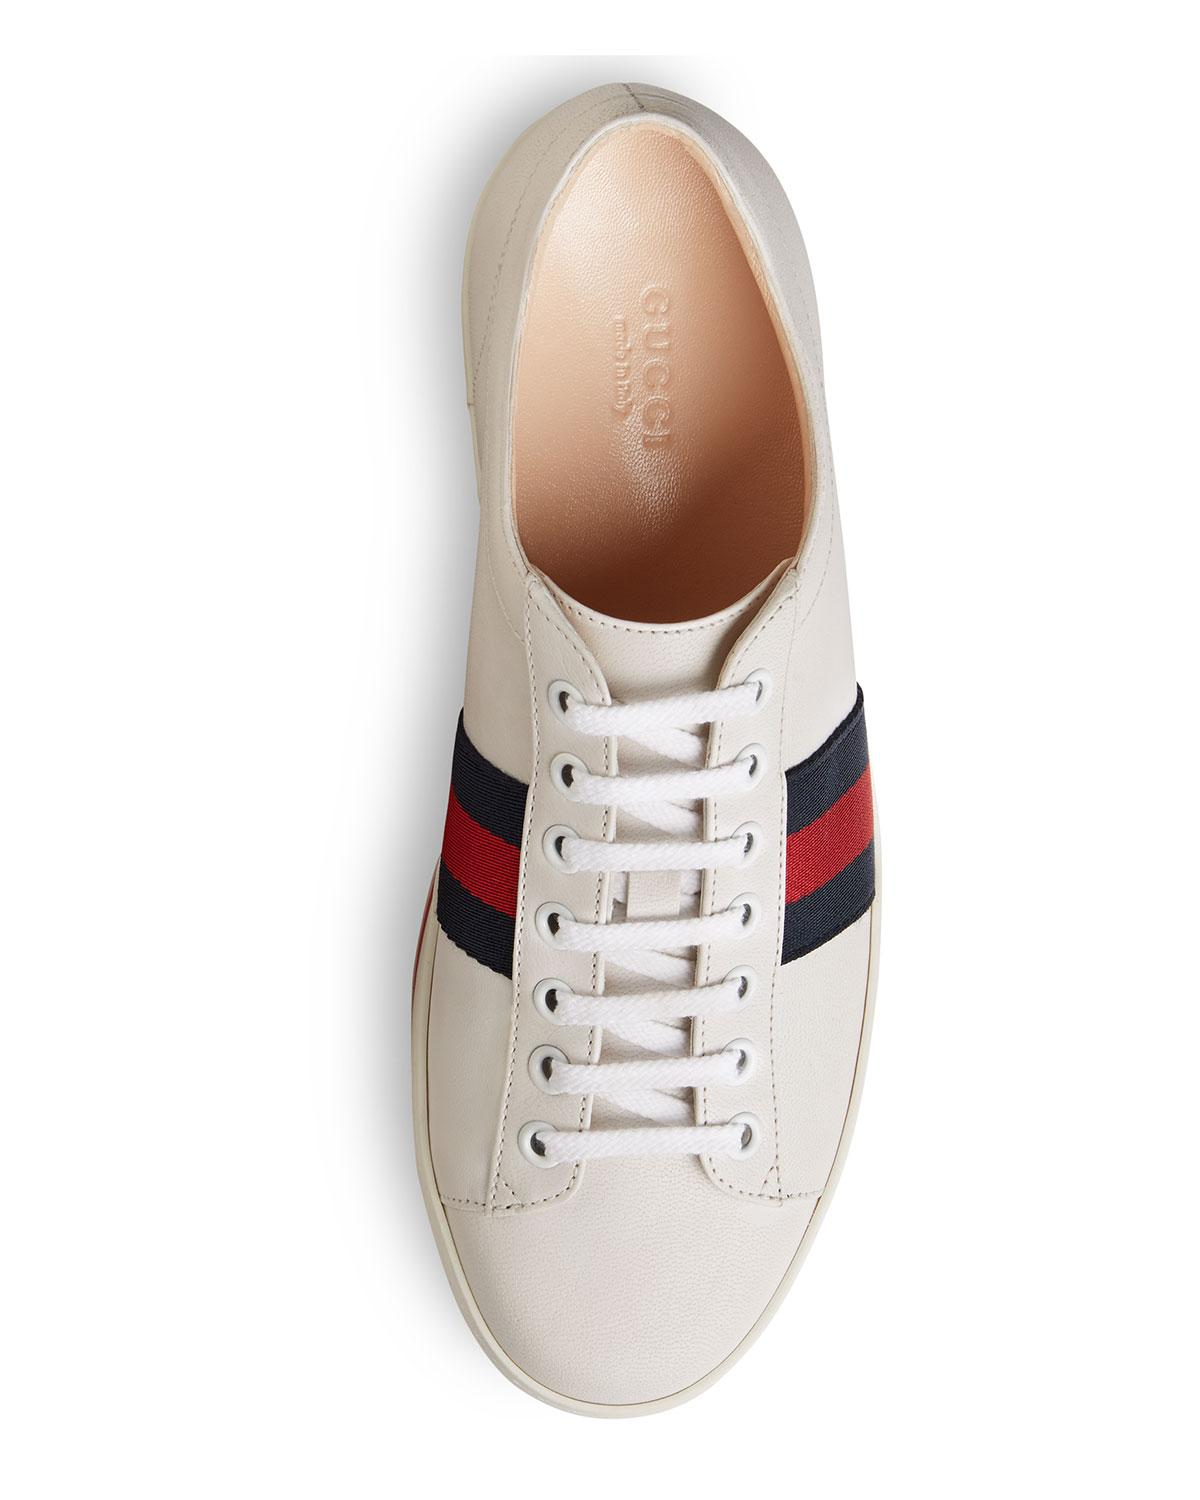 7bff720b324 Gucci - White Peggy Striped Platform Sneakers - Lyst. View fullscreen